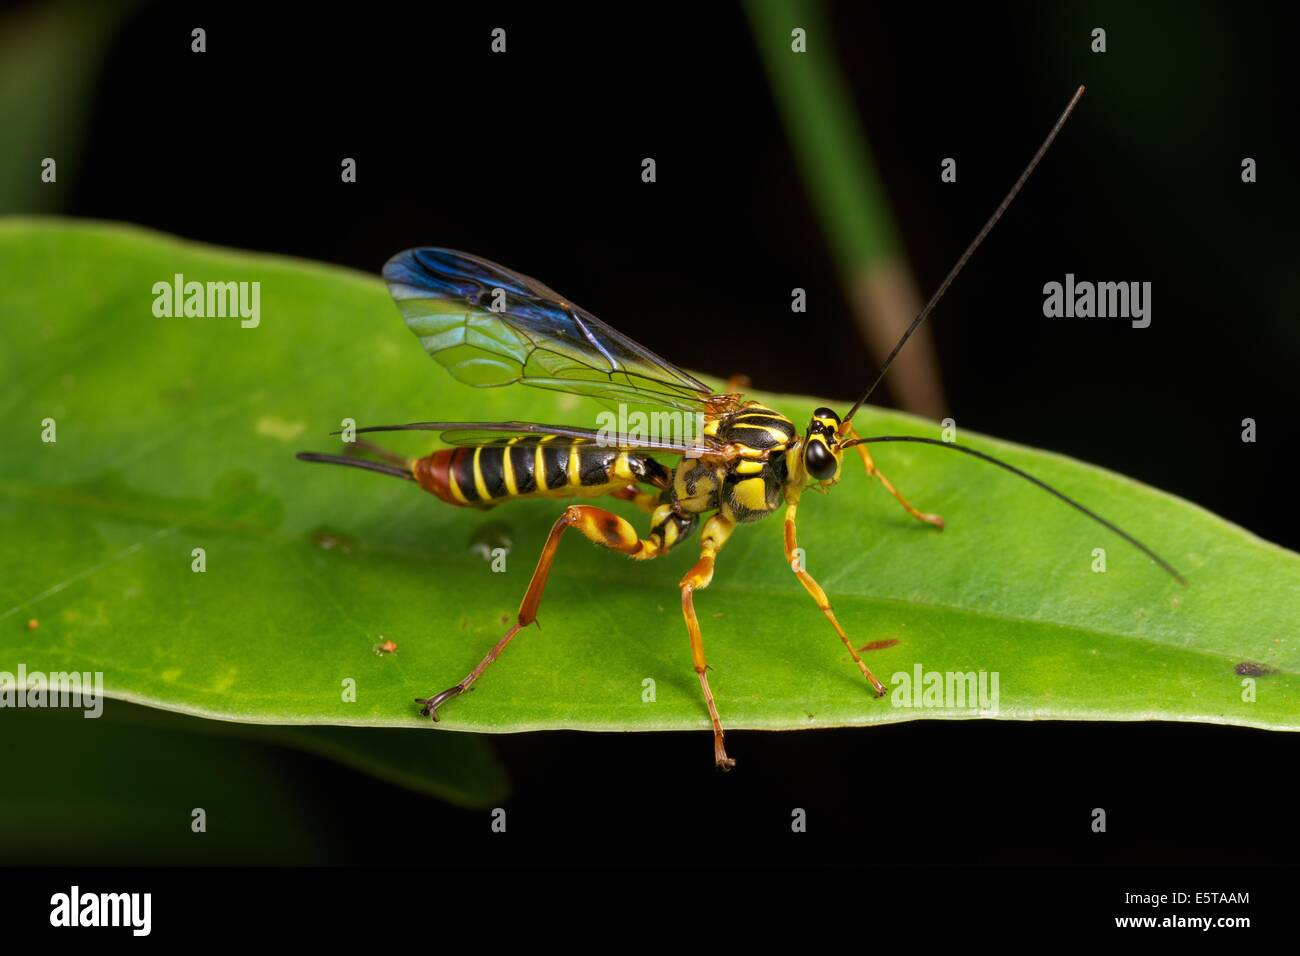 The Ichneumonidae are a family within the order Hymenoptera. Insects in this family are commonly called ichneumon Stock Photo